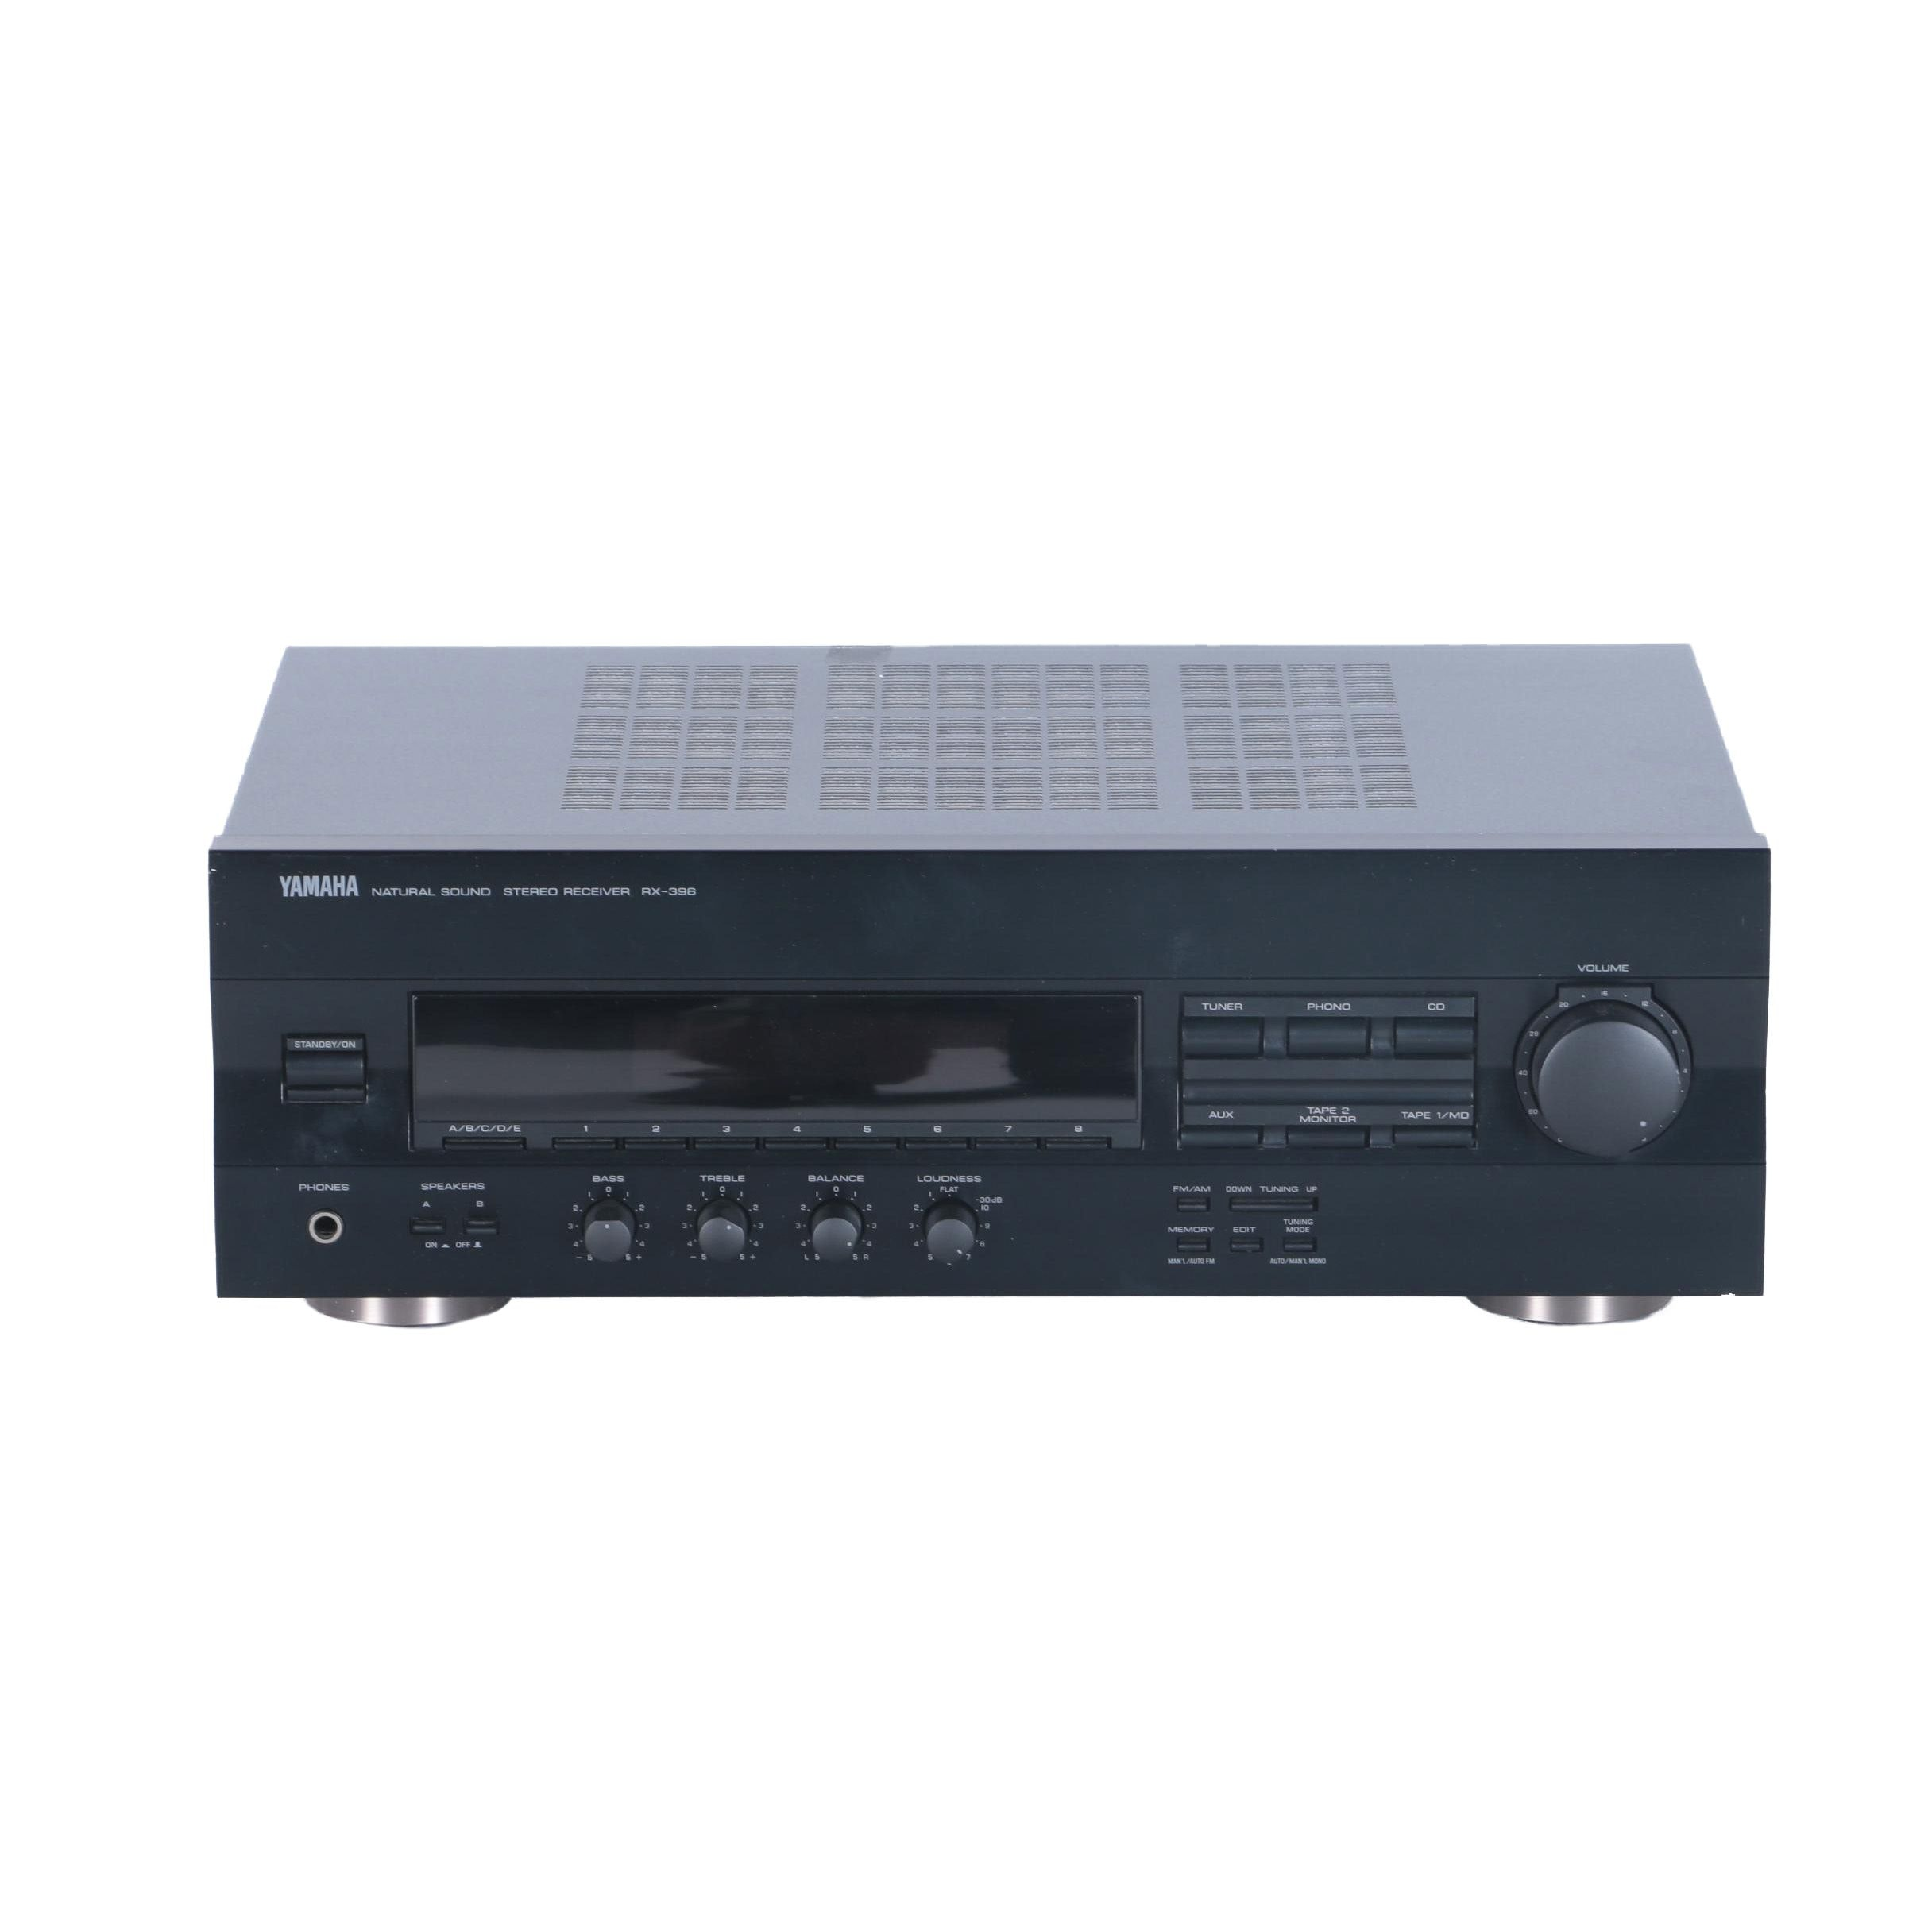 Yamaha Stereo Receiver RX-396